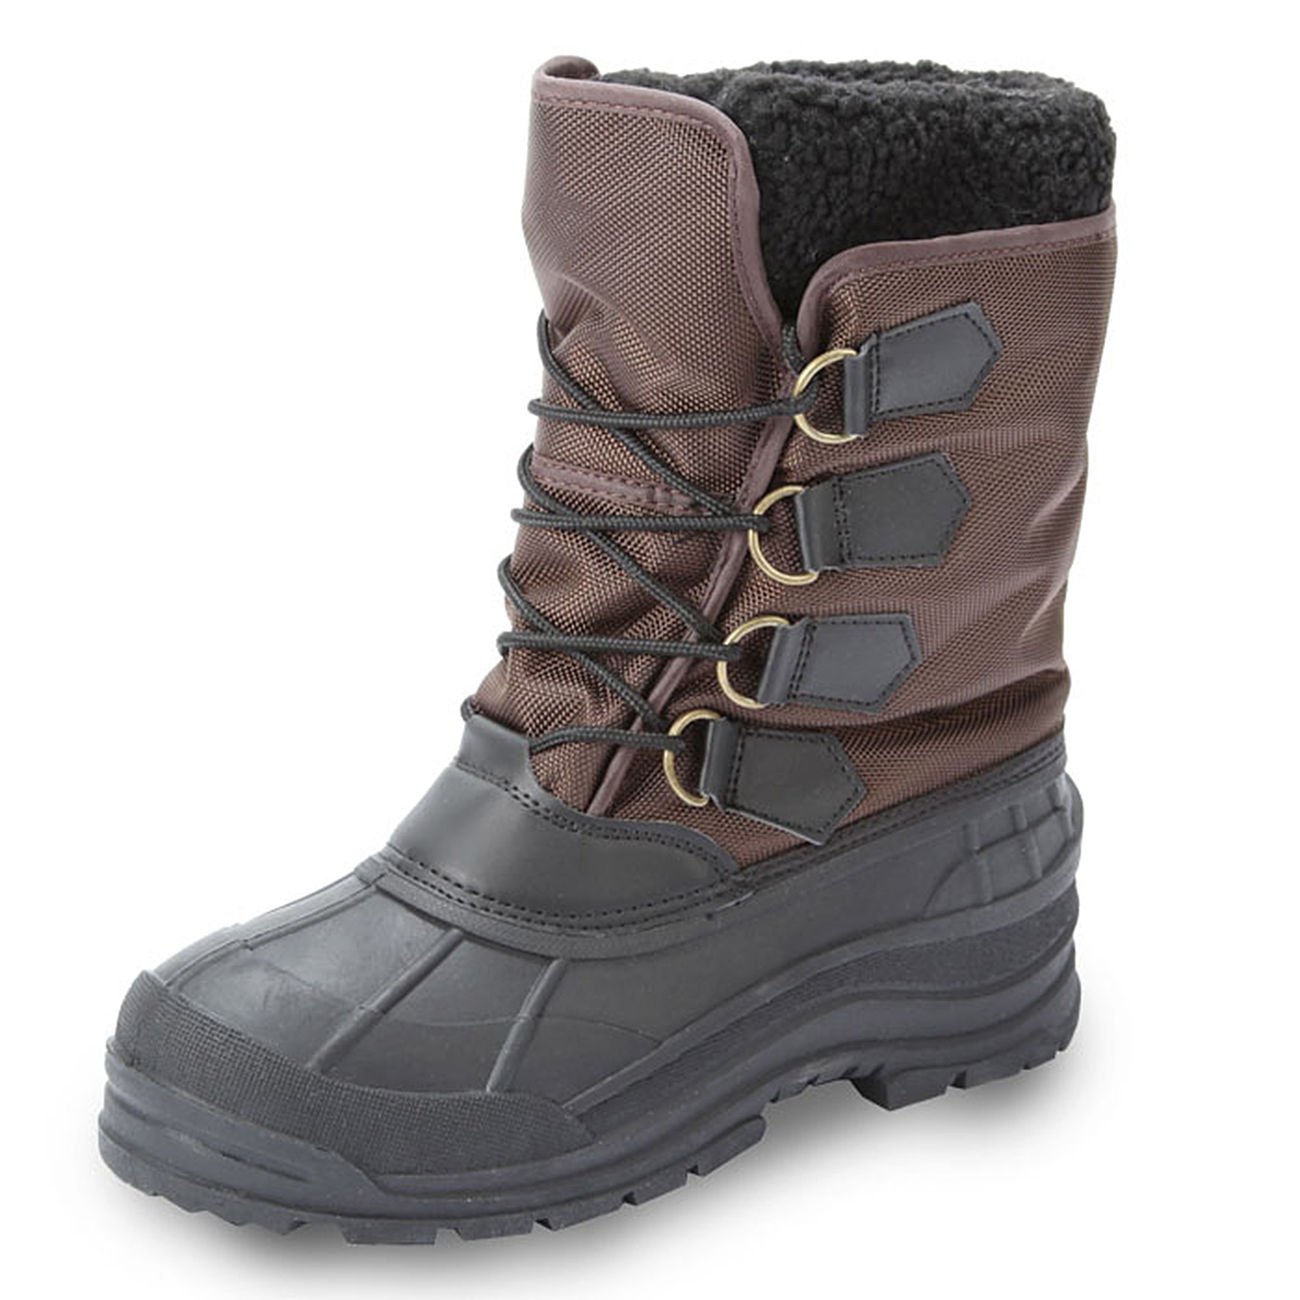 Brandit Stiefel Highland Weather Extreme braun 4